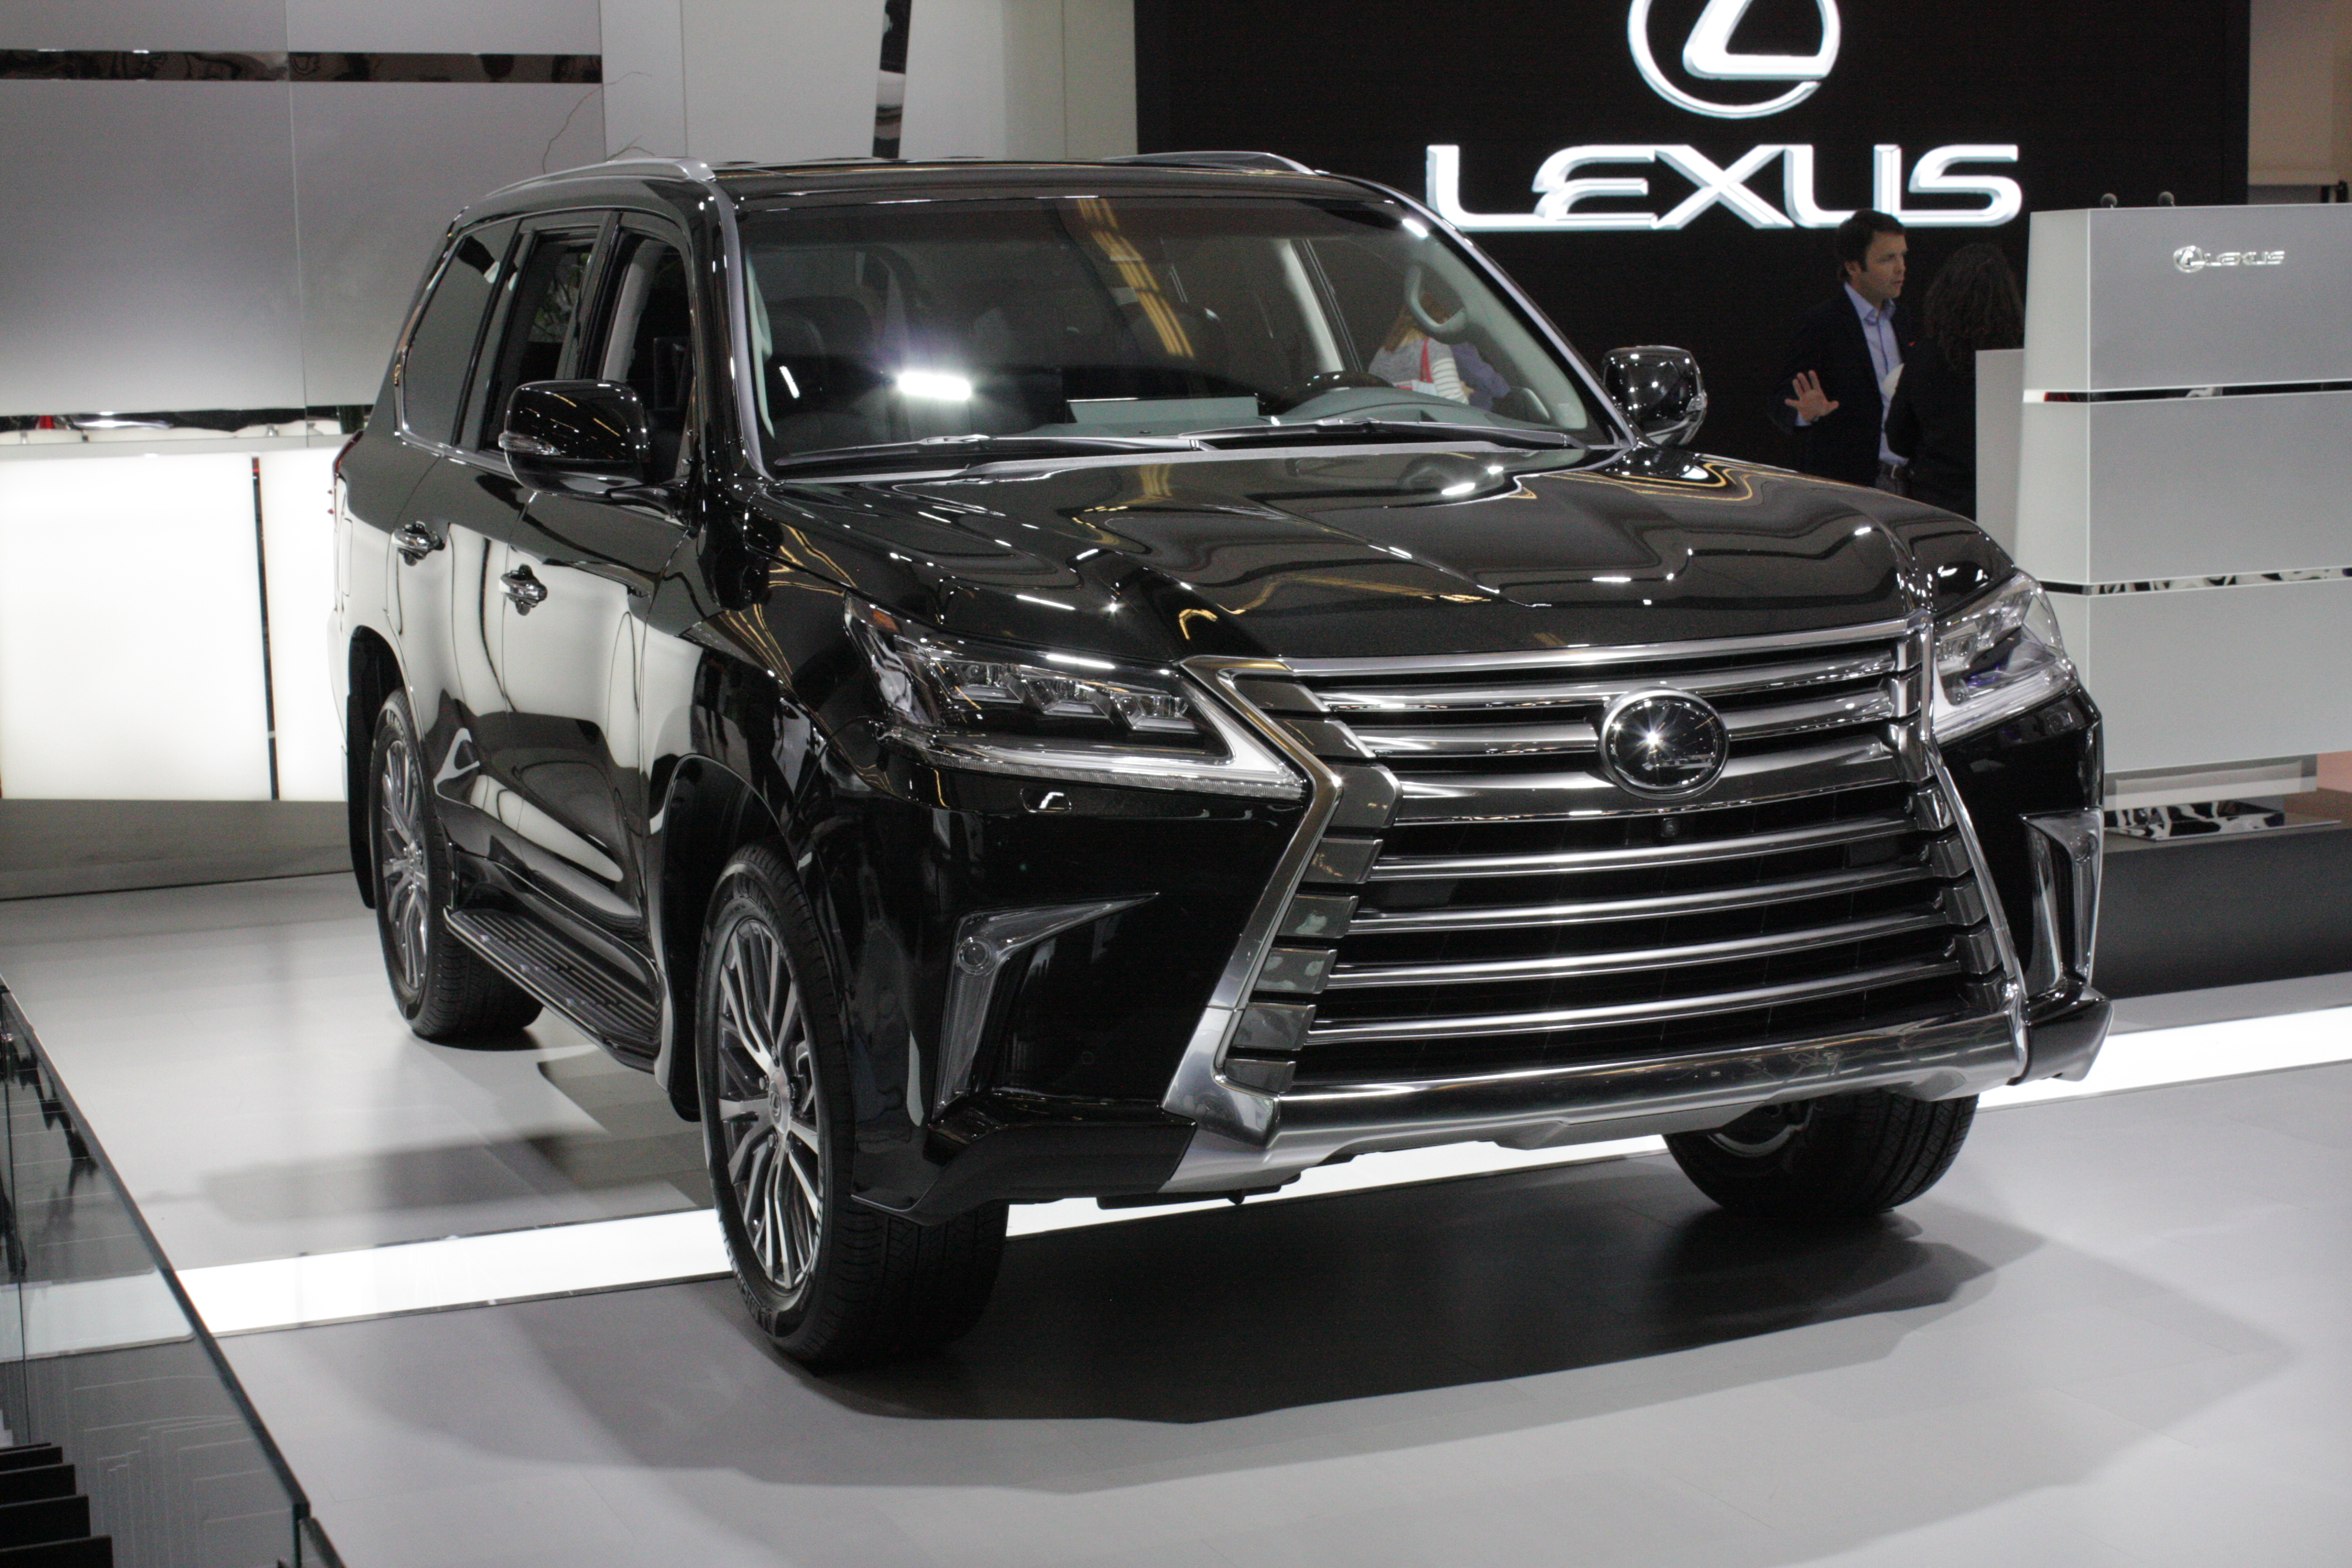 Also making its Canadian premiere for Lexus is a redesigned LX 570 full-size SUV.